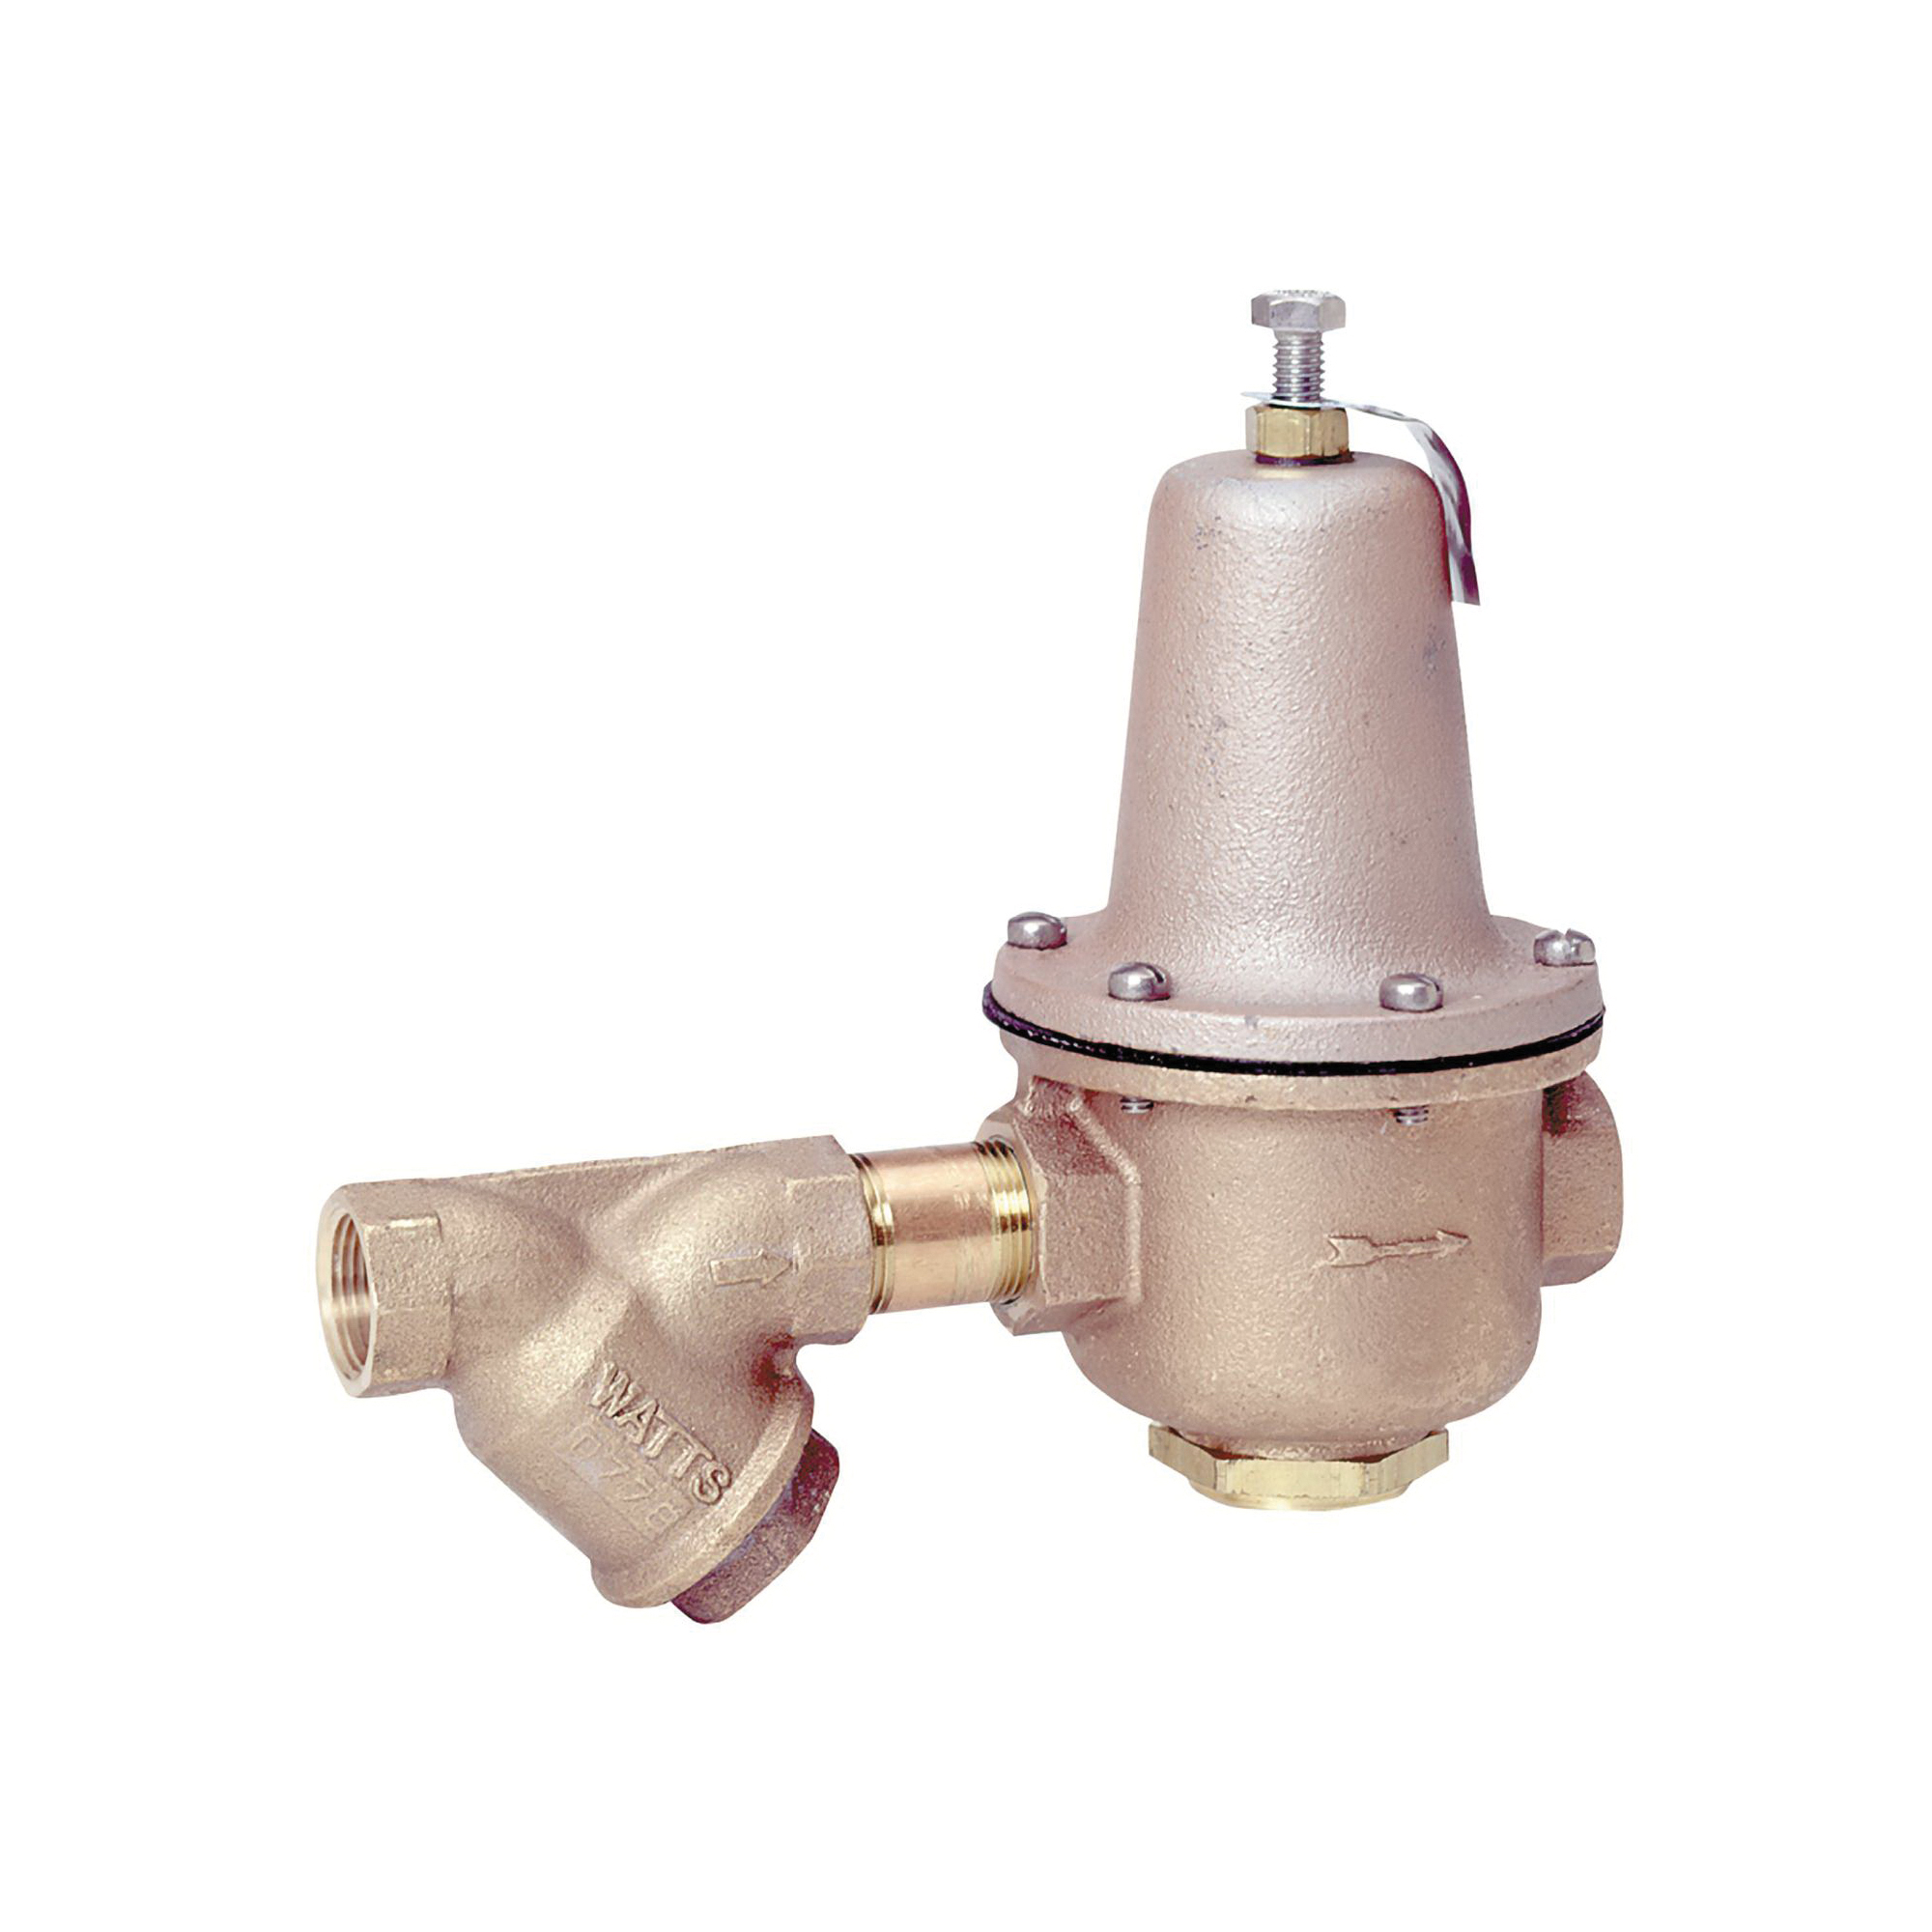 WATTS® LF223-S High Capacity Lead Free Pressure Reducing Valve, 1-1/2 in, FNPT Inlet with Strainer x FNPT Outlet